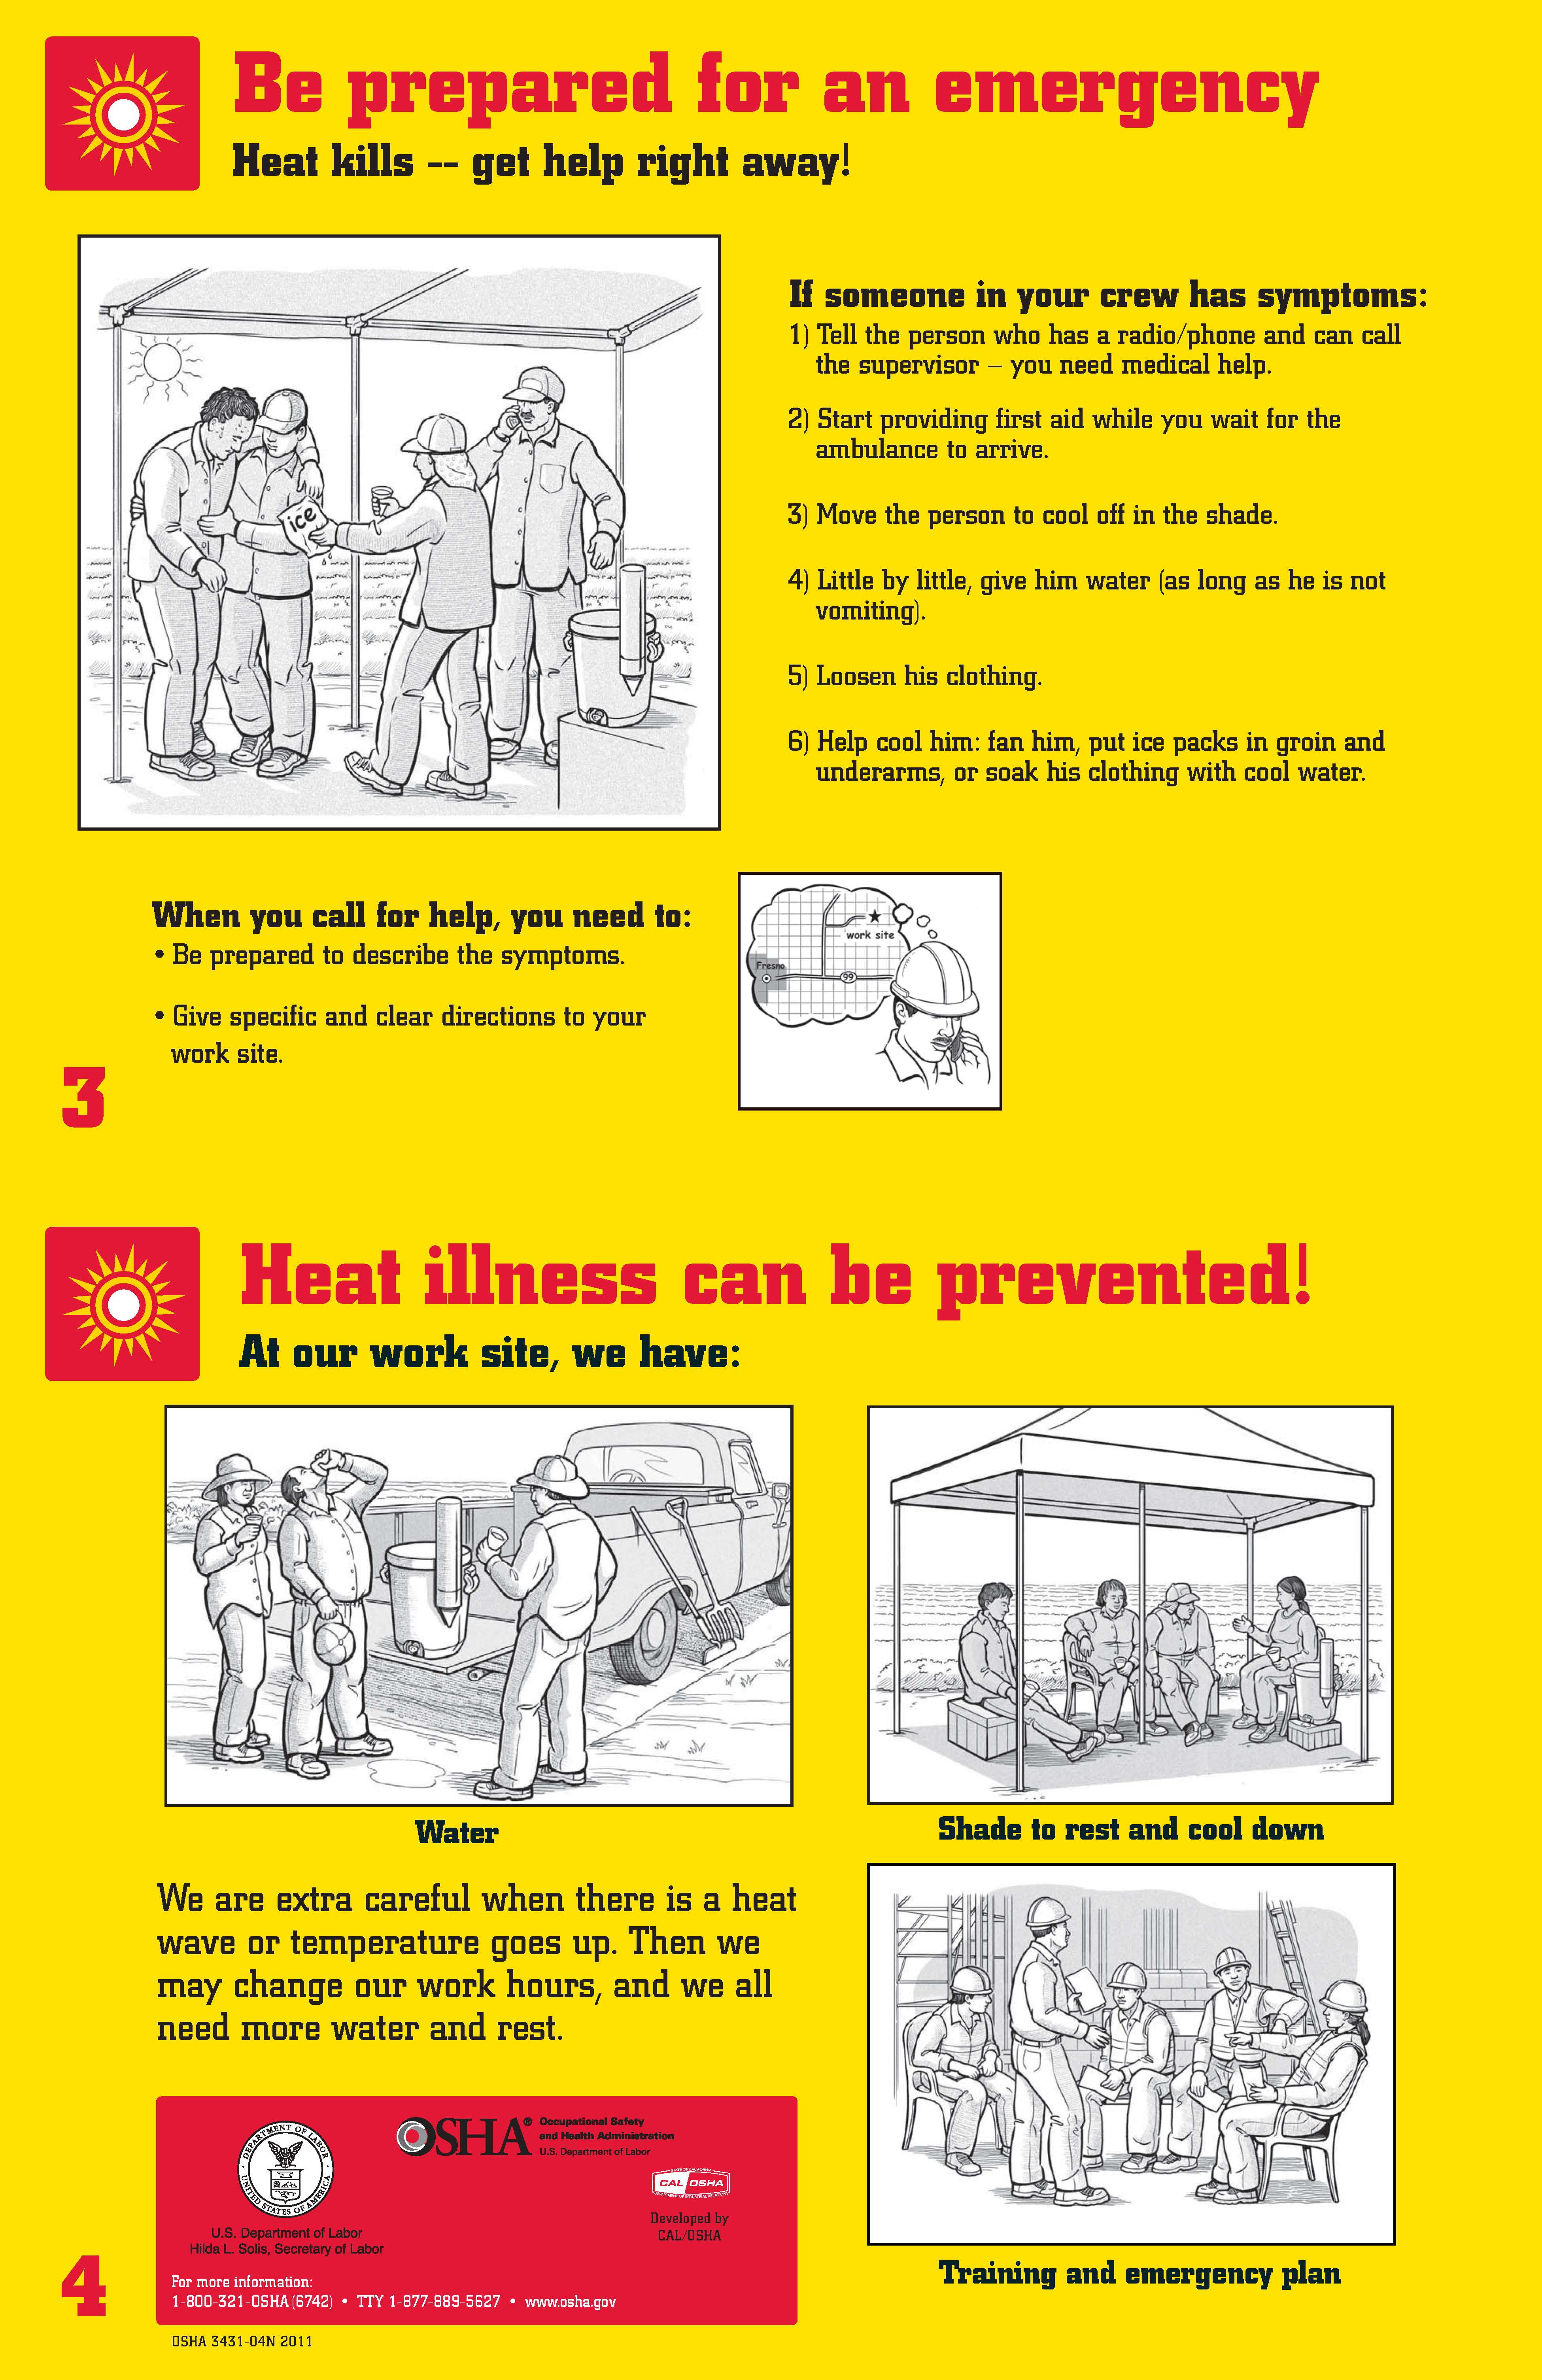 Health effects of heat page 2